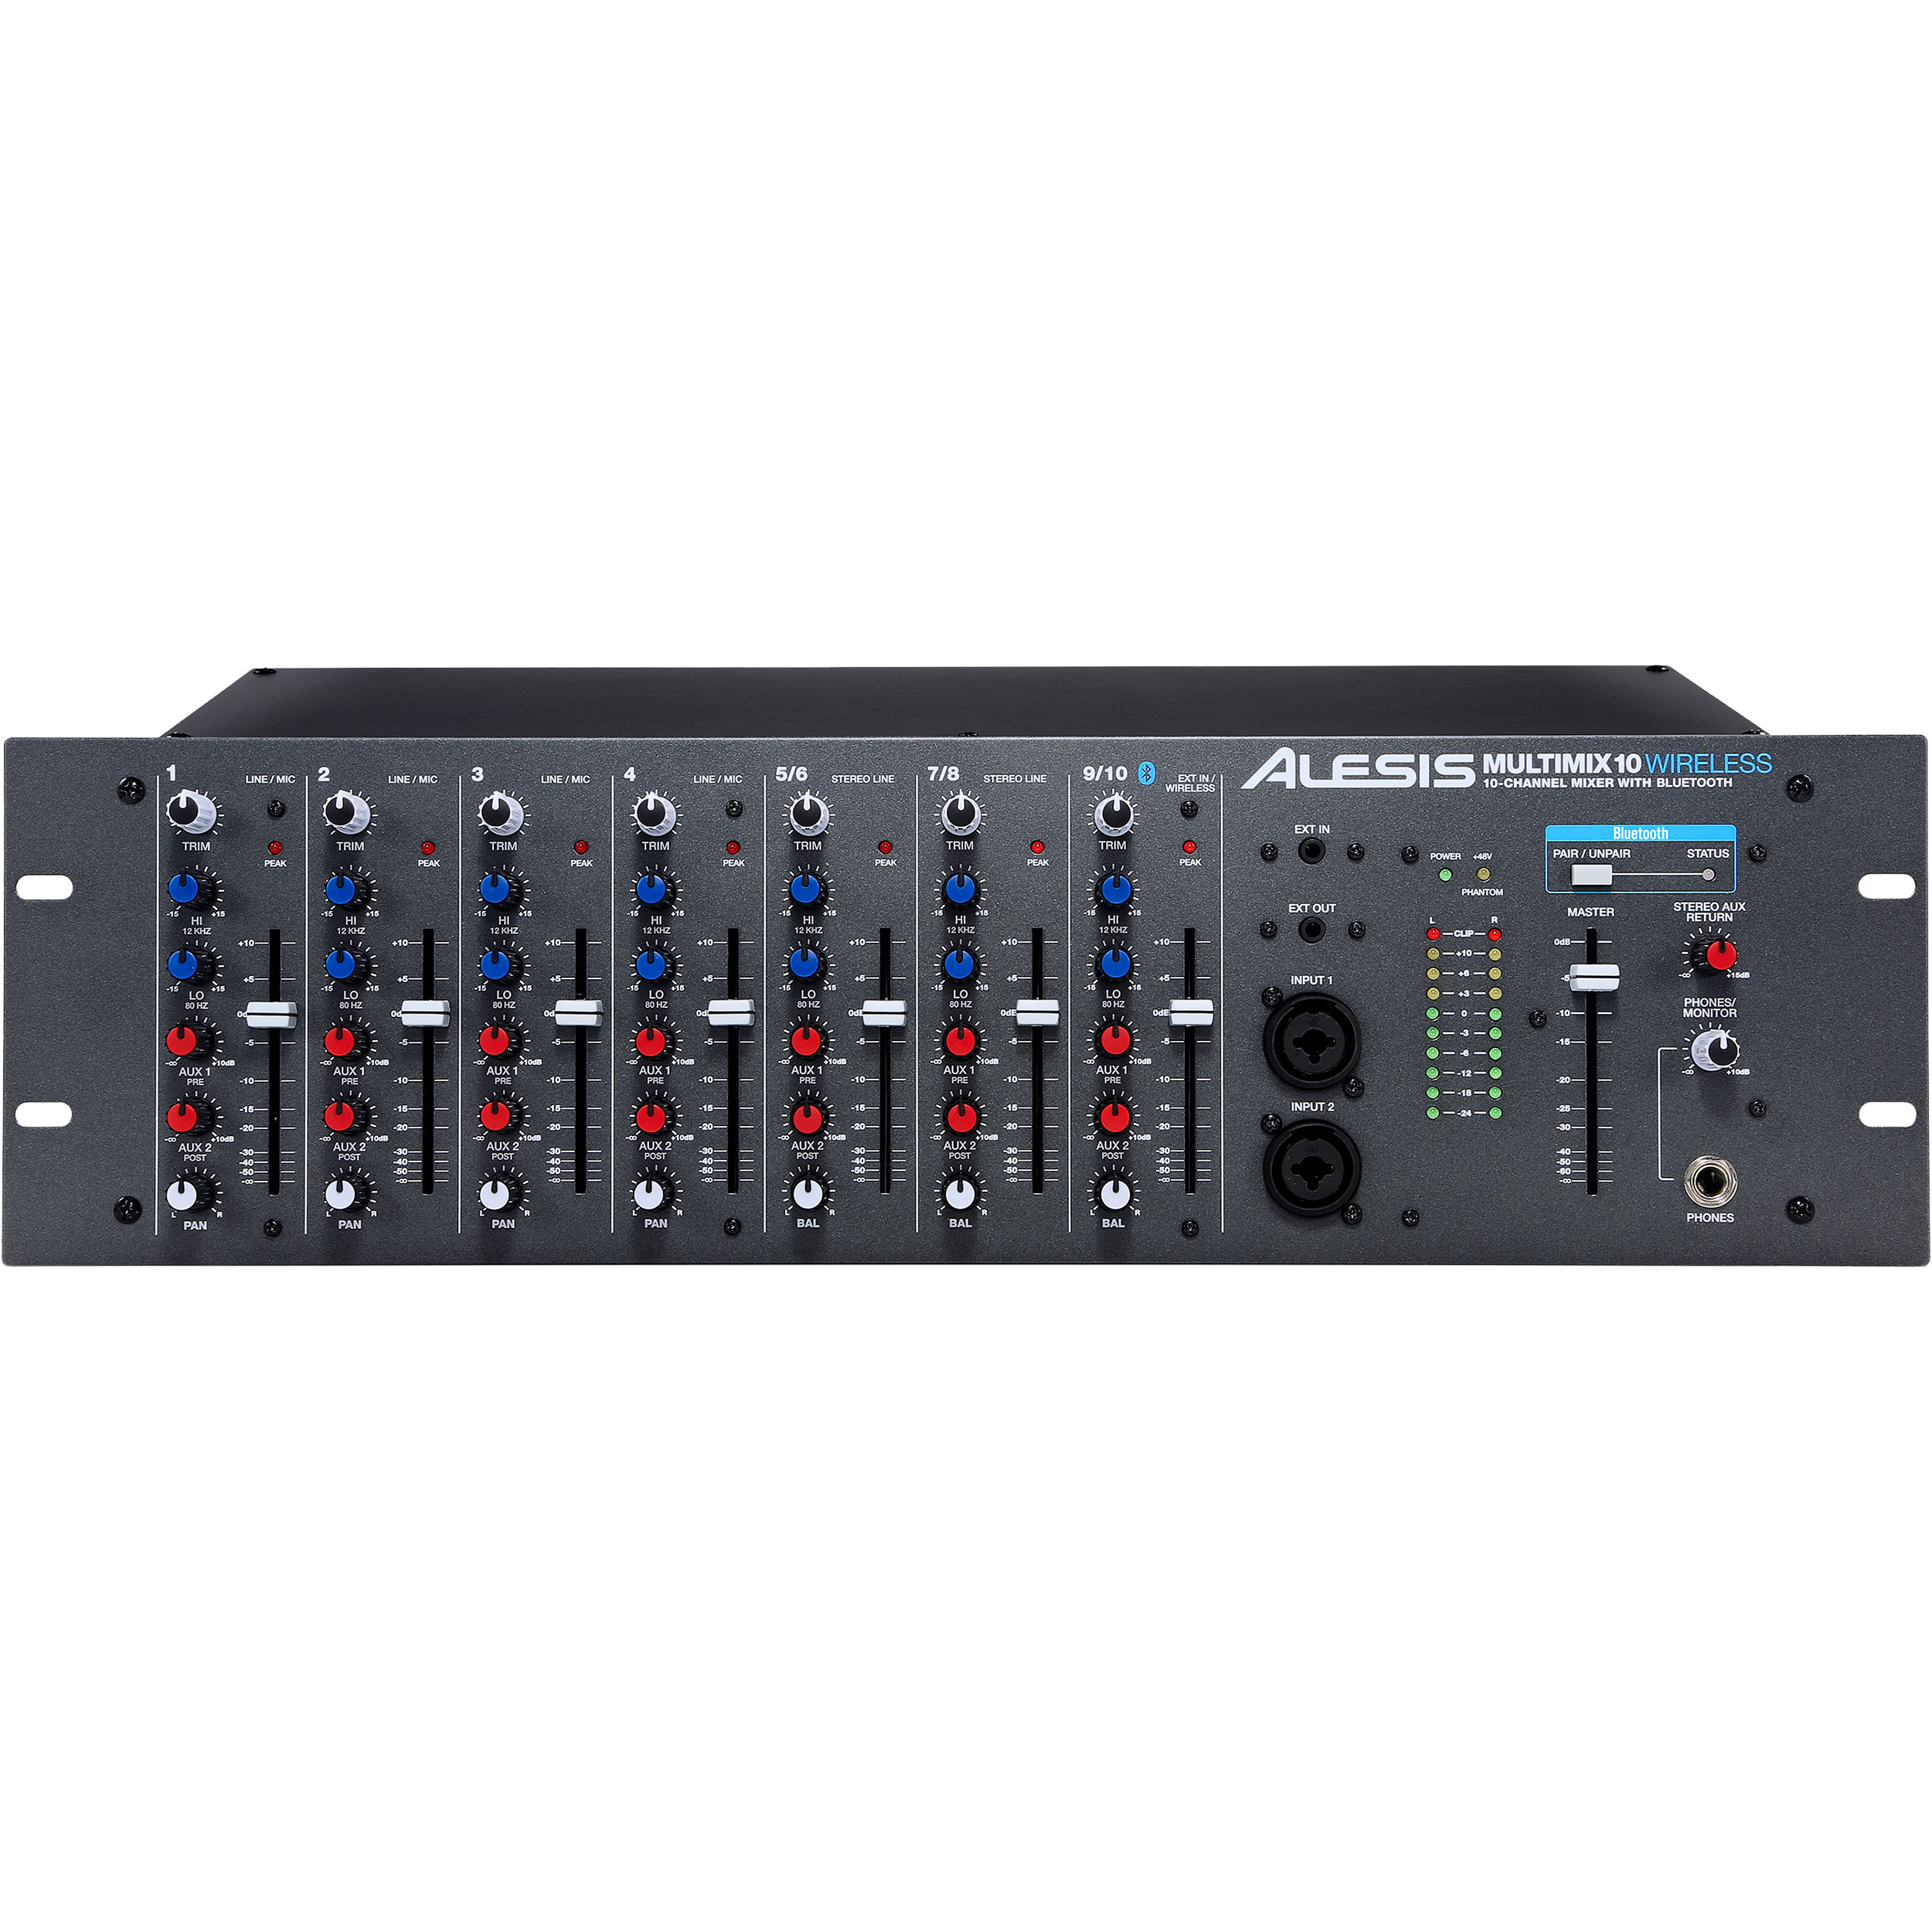 Alesis MultiMix 10 Wireless 10-Channel 3RU Bluetooth Mixer